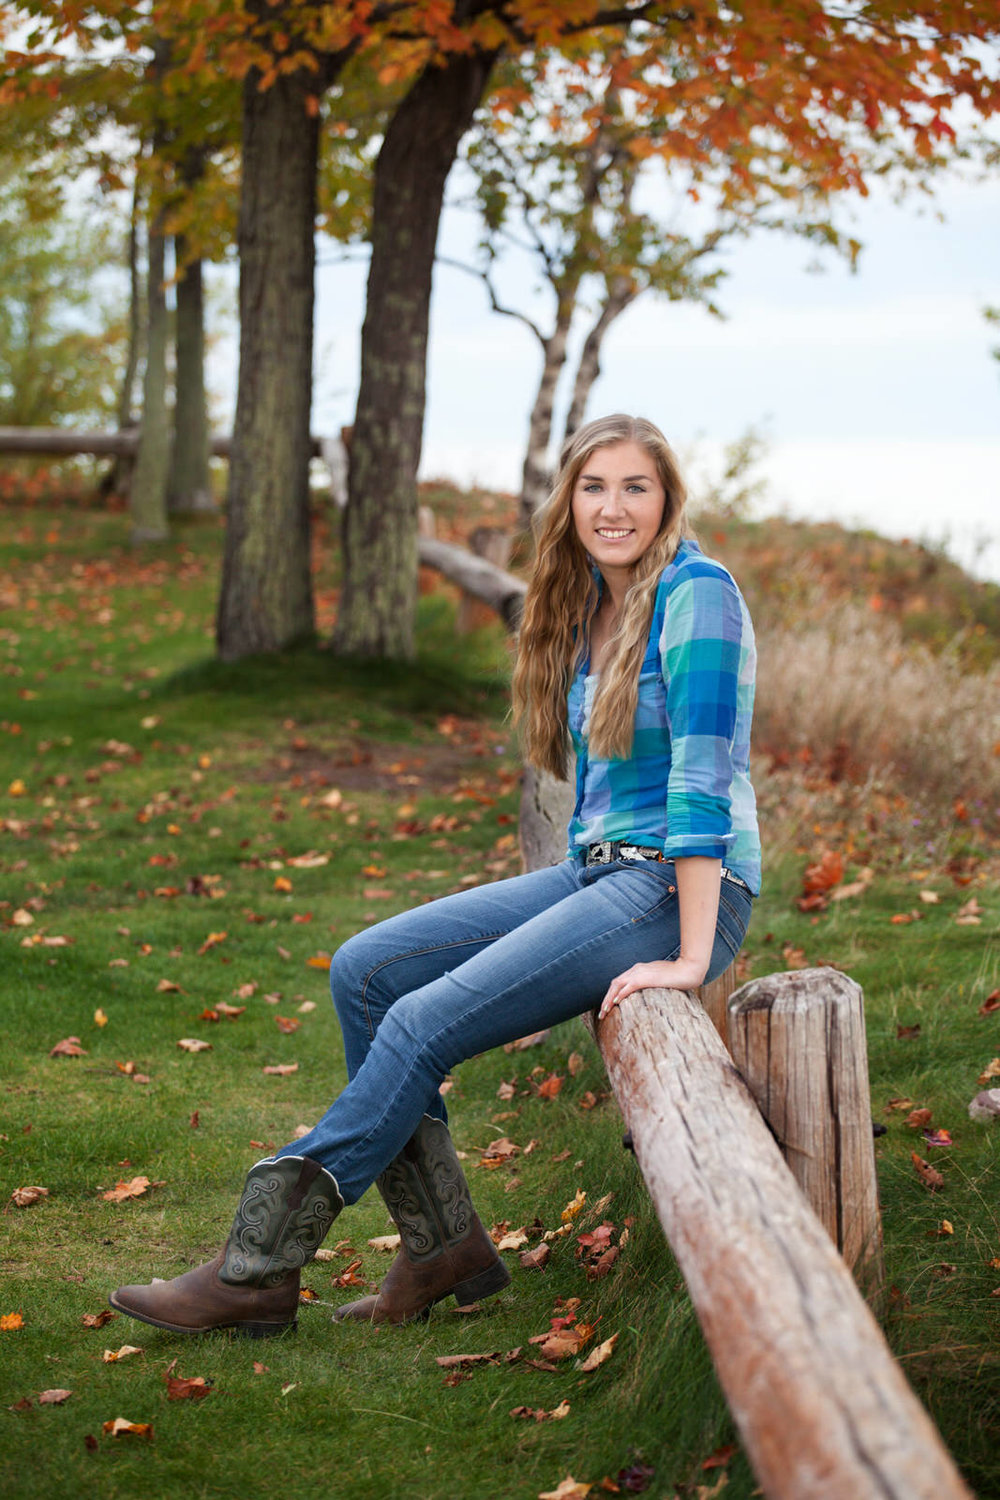 upper-peninsula-photographer-high-school-senior-marquette-ishpeming-negaunee-michigan-jackie-solomon-010.jpg